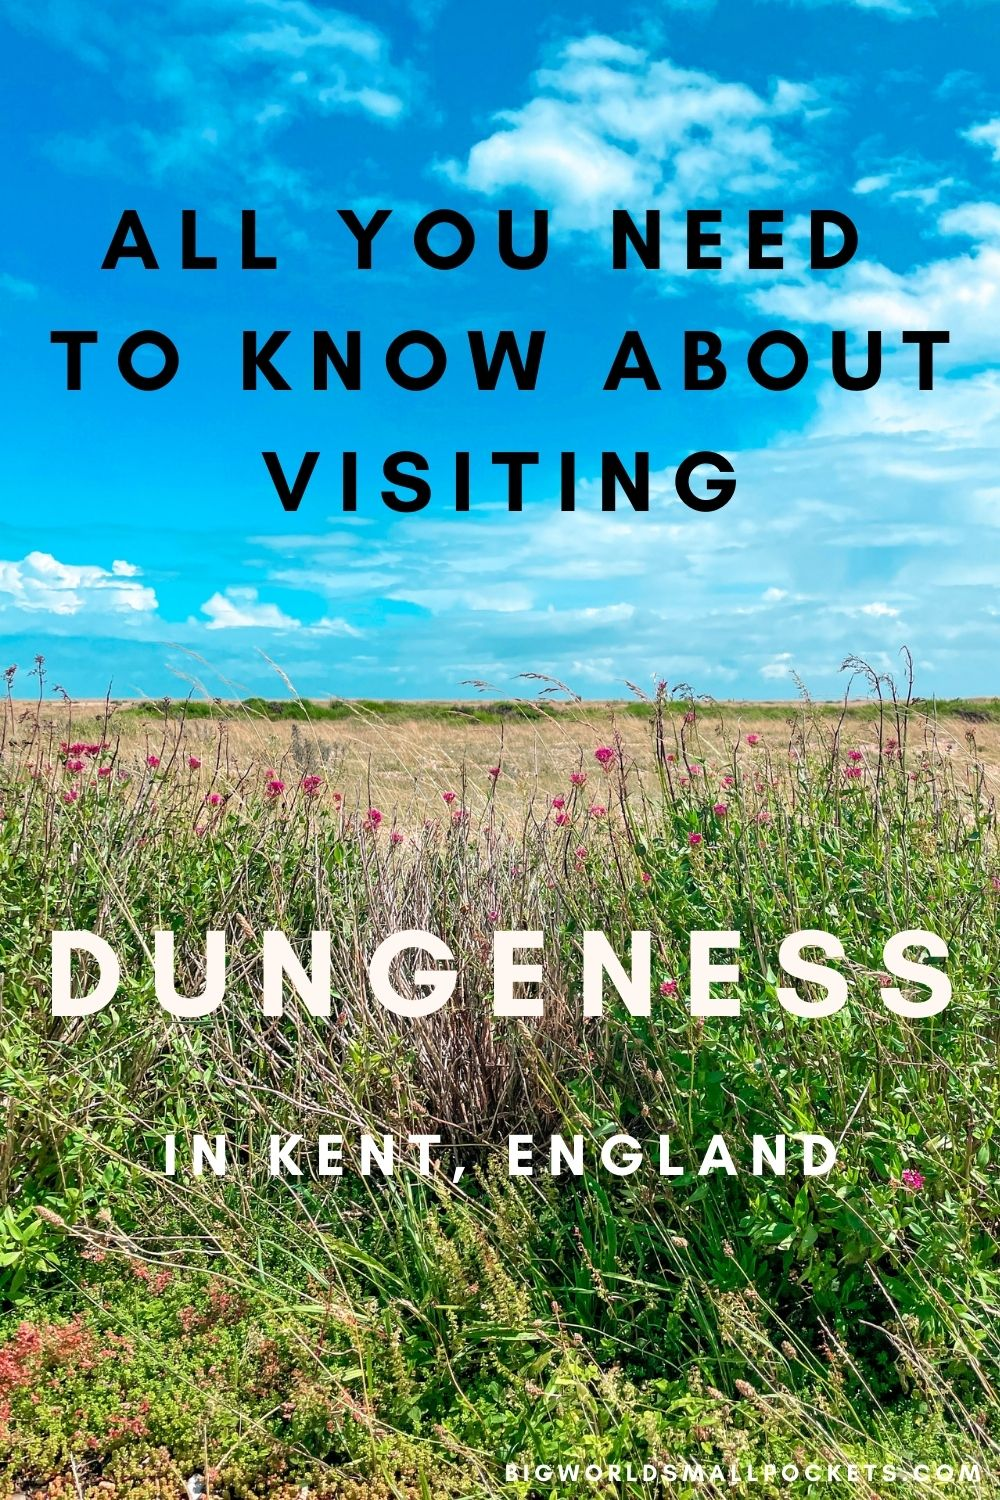 All You Need to Know About Visiting Dungeness in Kent, UK